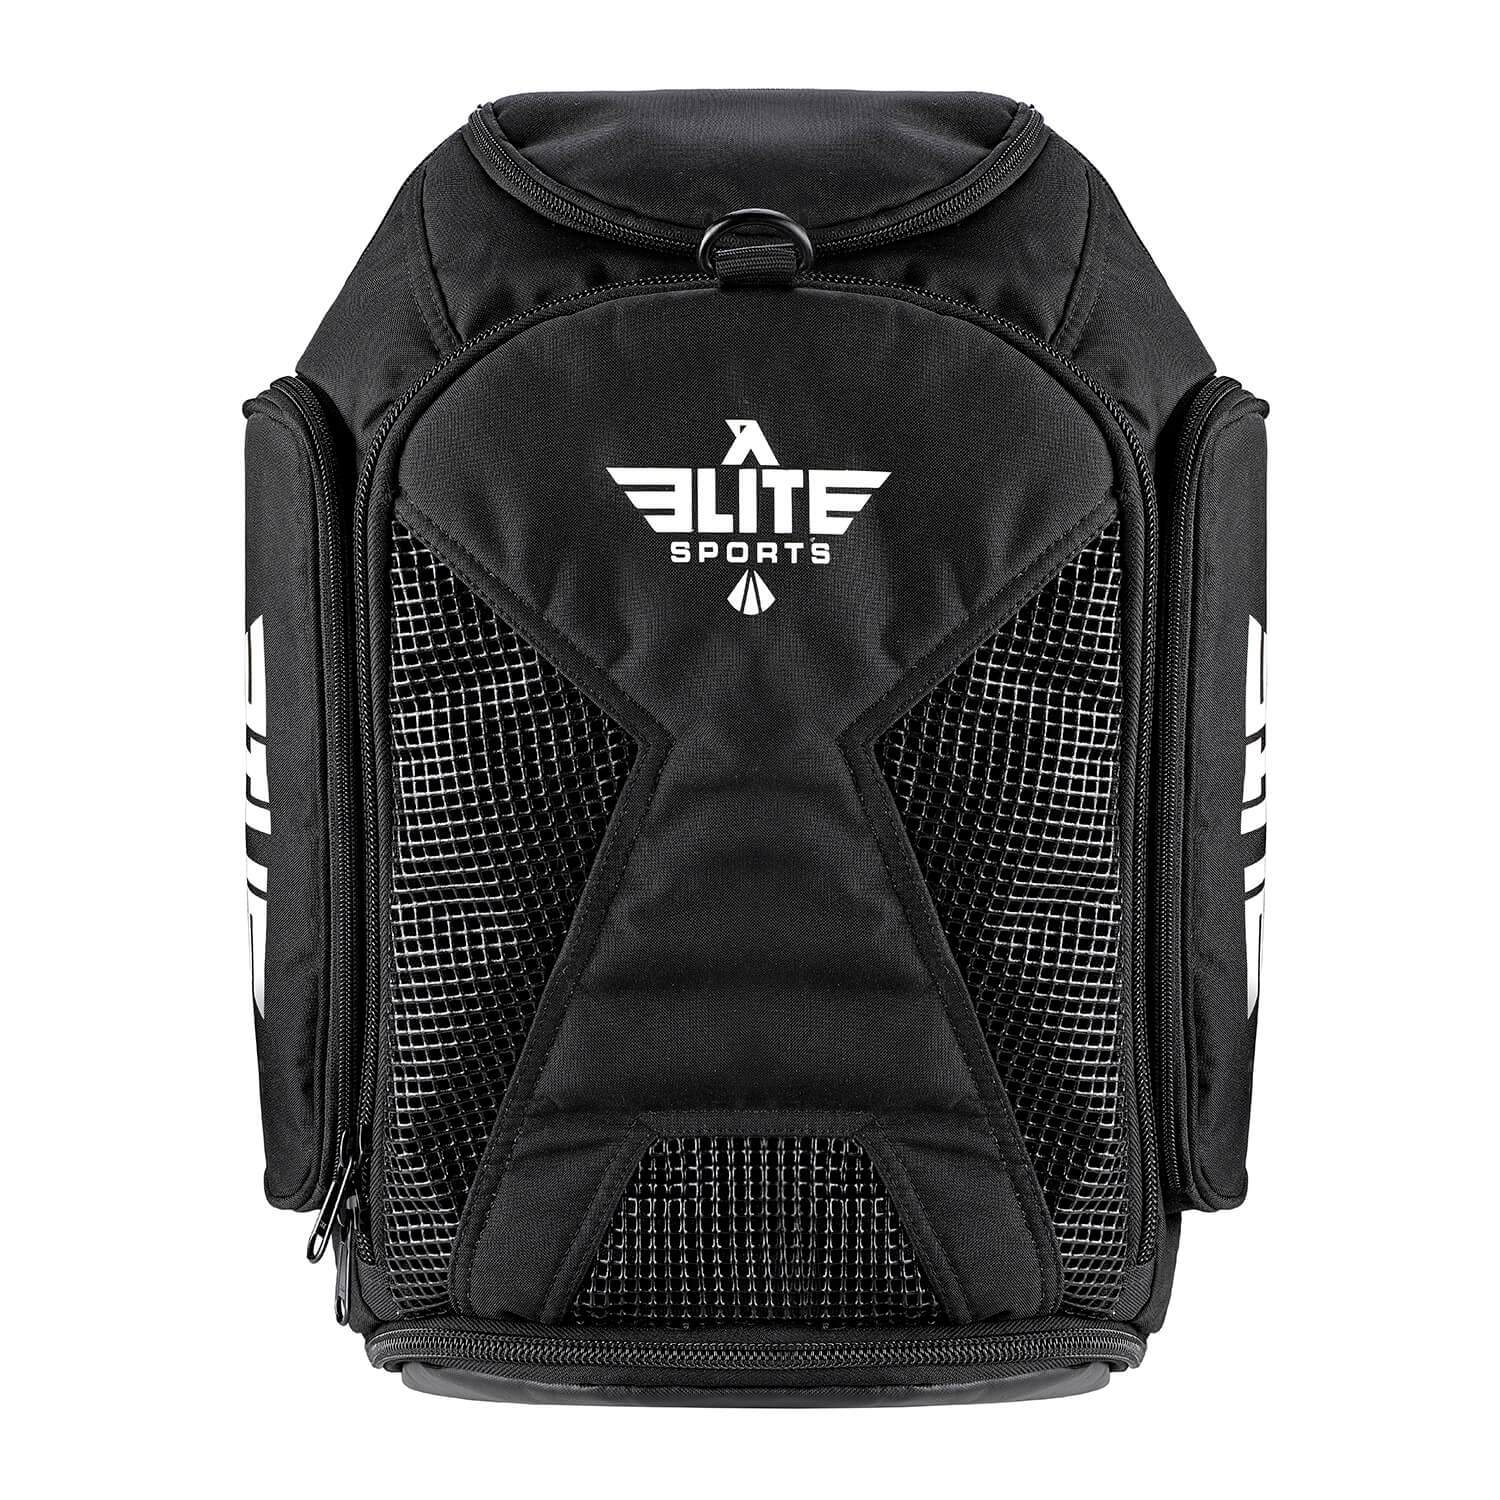 Load image into Gallery viewer, Elite Sports Athletic Convertible Black Training Gear Gym Bag & Backpack